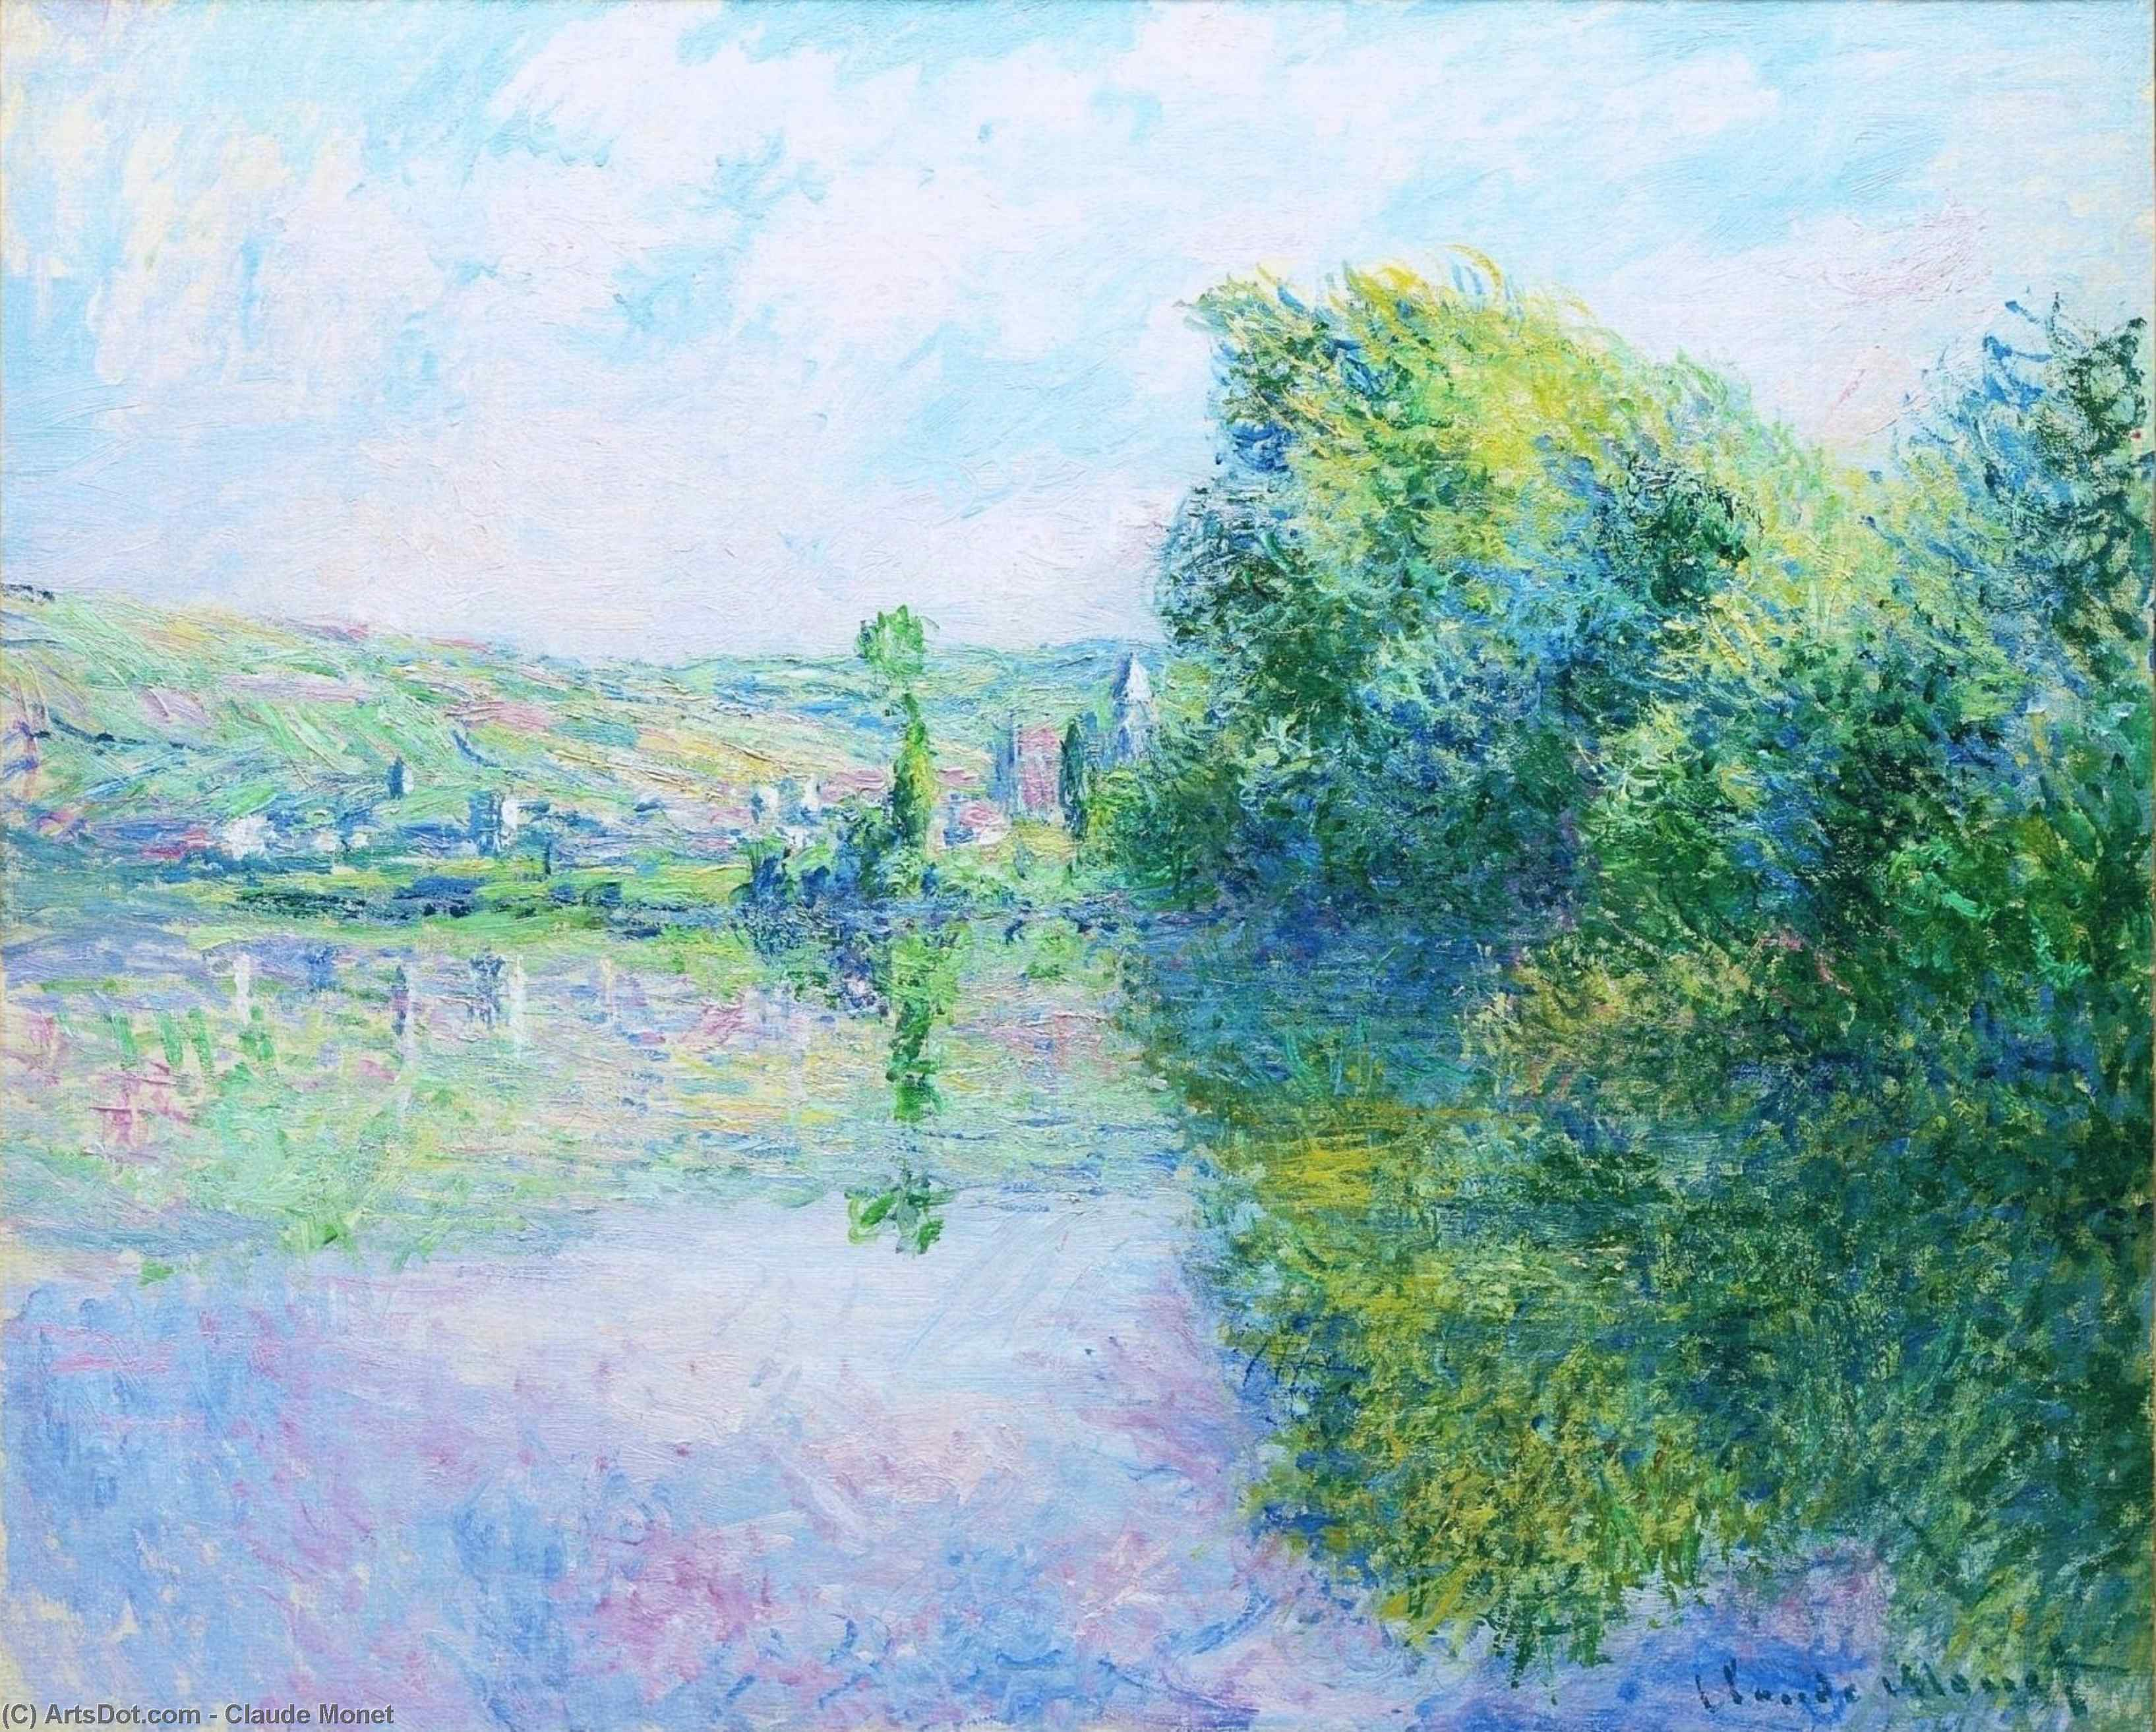 Wikioo.org - The Encyclopedia of Fine Arts - Painting, Artwork by Claude Monet - The Siene at Vetheuil